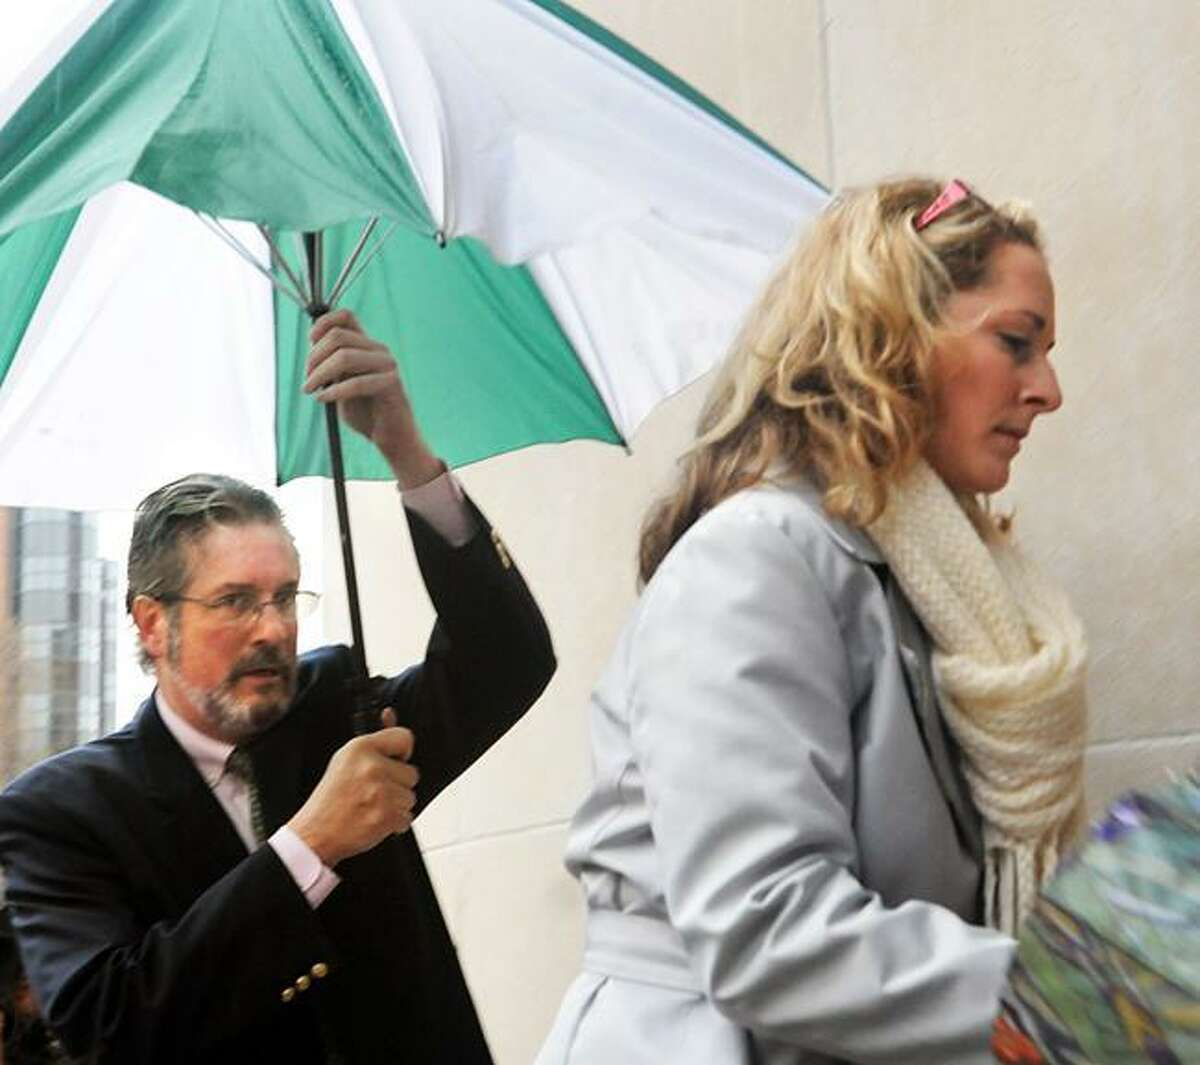 New Haven- Dr. William Petit (L) and his fiance arrive at Superior Court. Melanie Stengel/Register